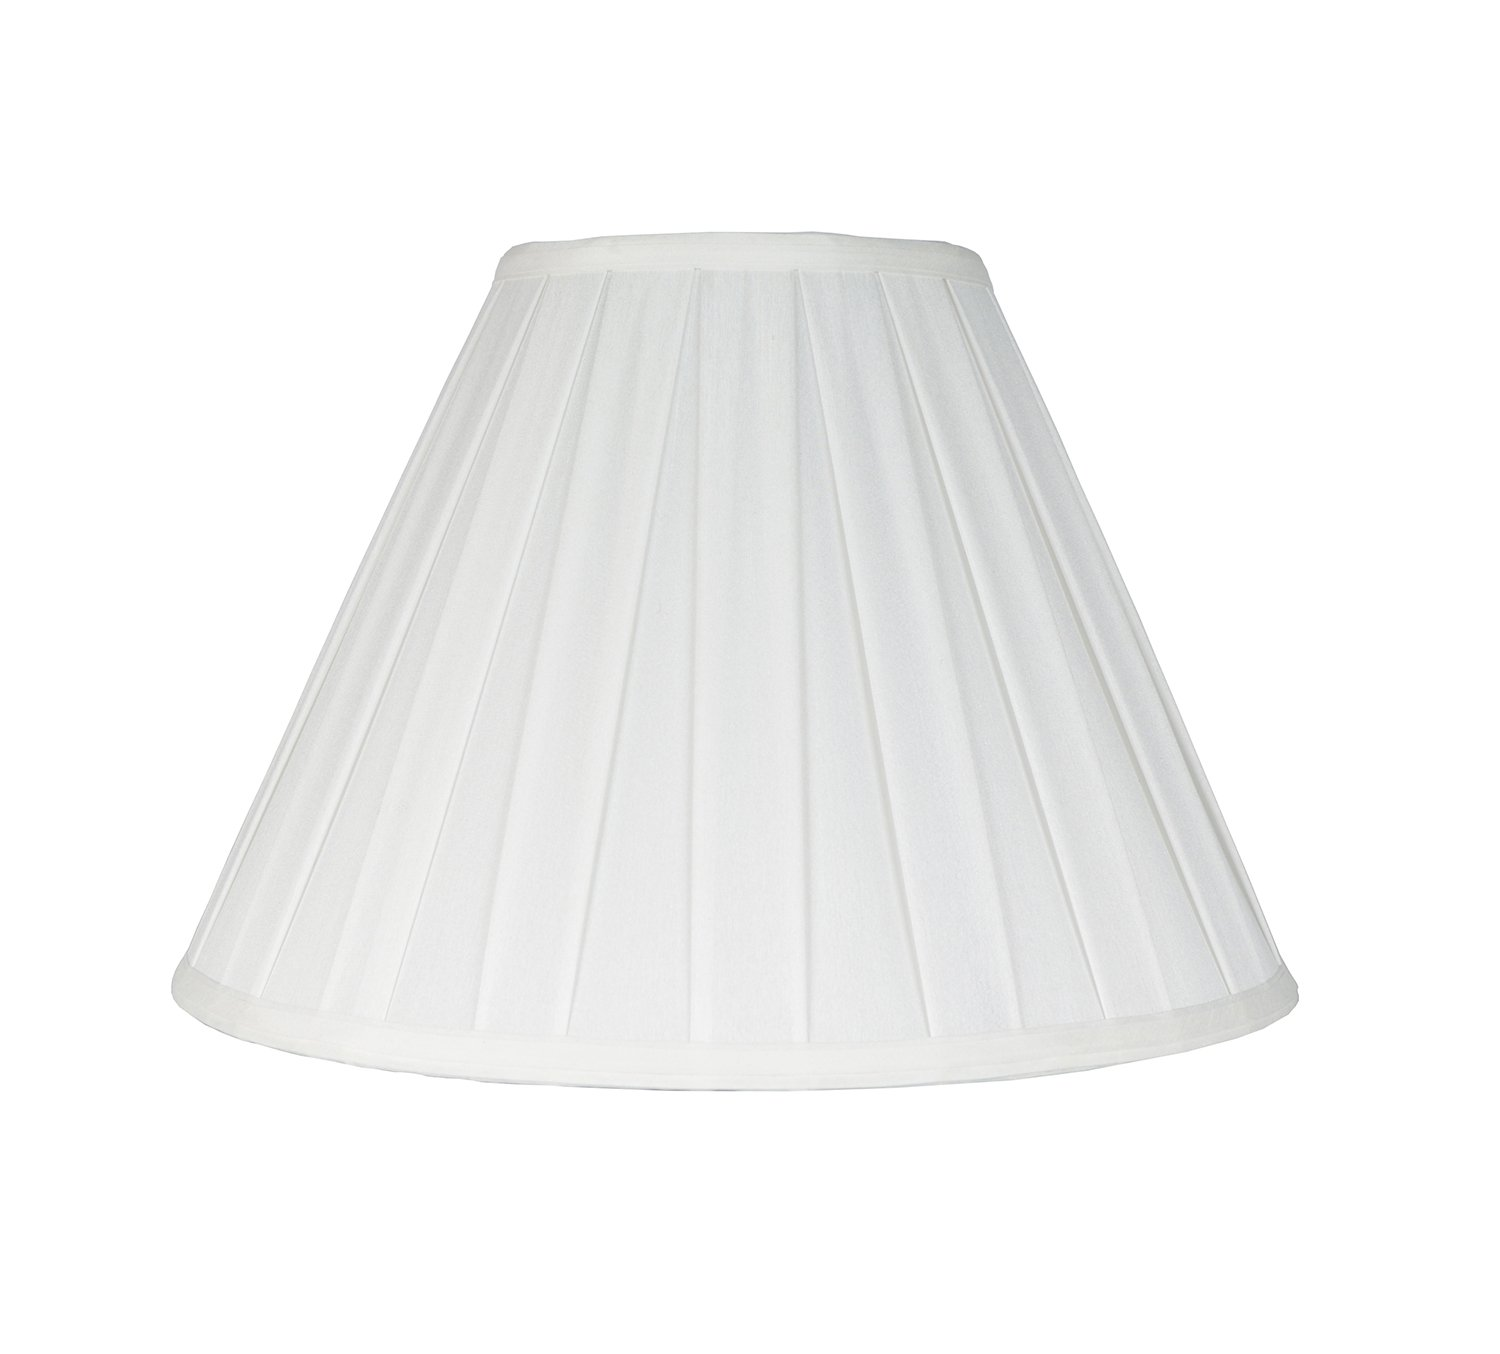 Urbanest Softback Empire Box Pleat Lampshade, Faux Silk, 8x16x11'', Off White, Spider